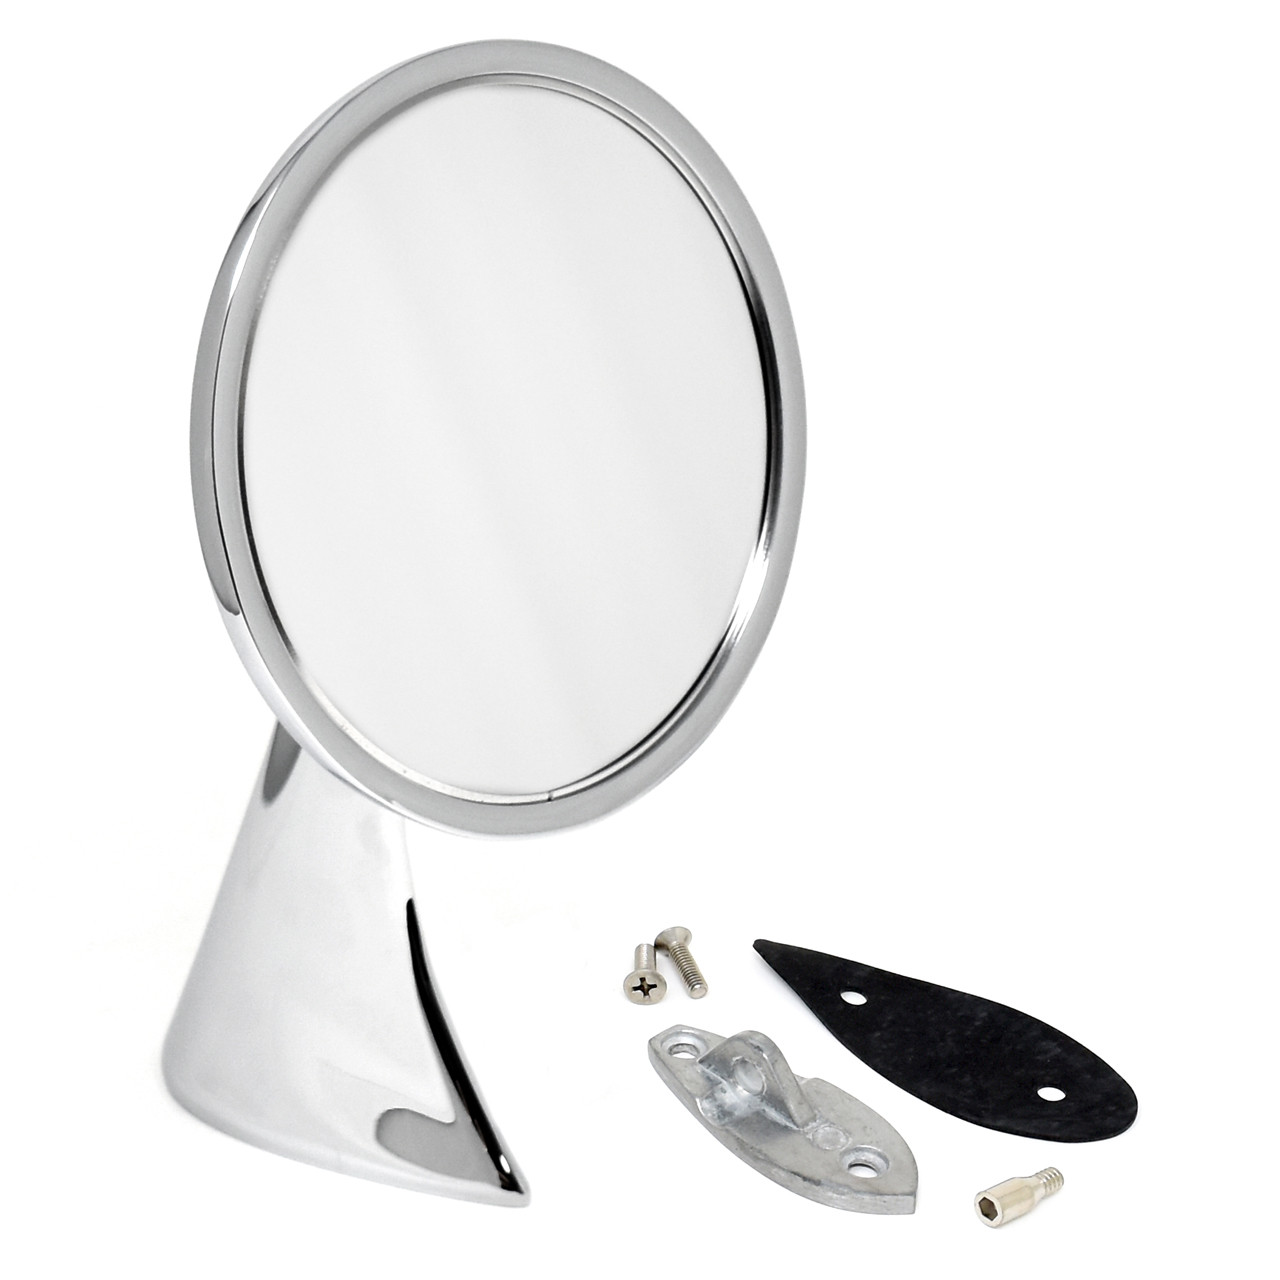 eClassics 1963-1967 Chevrolet Corvette Outside Mirror Assembly With Bowtie